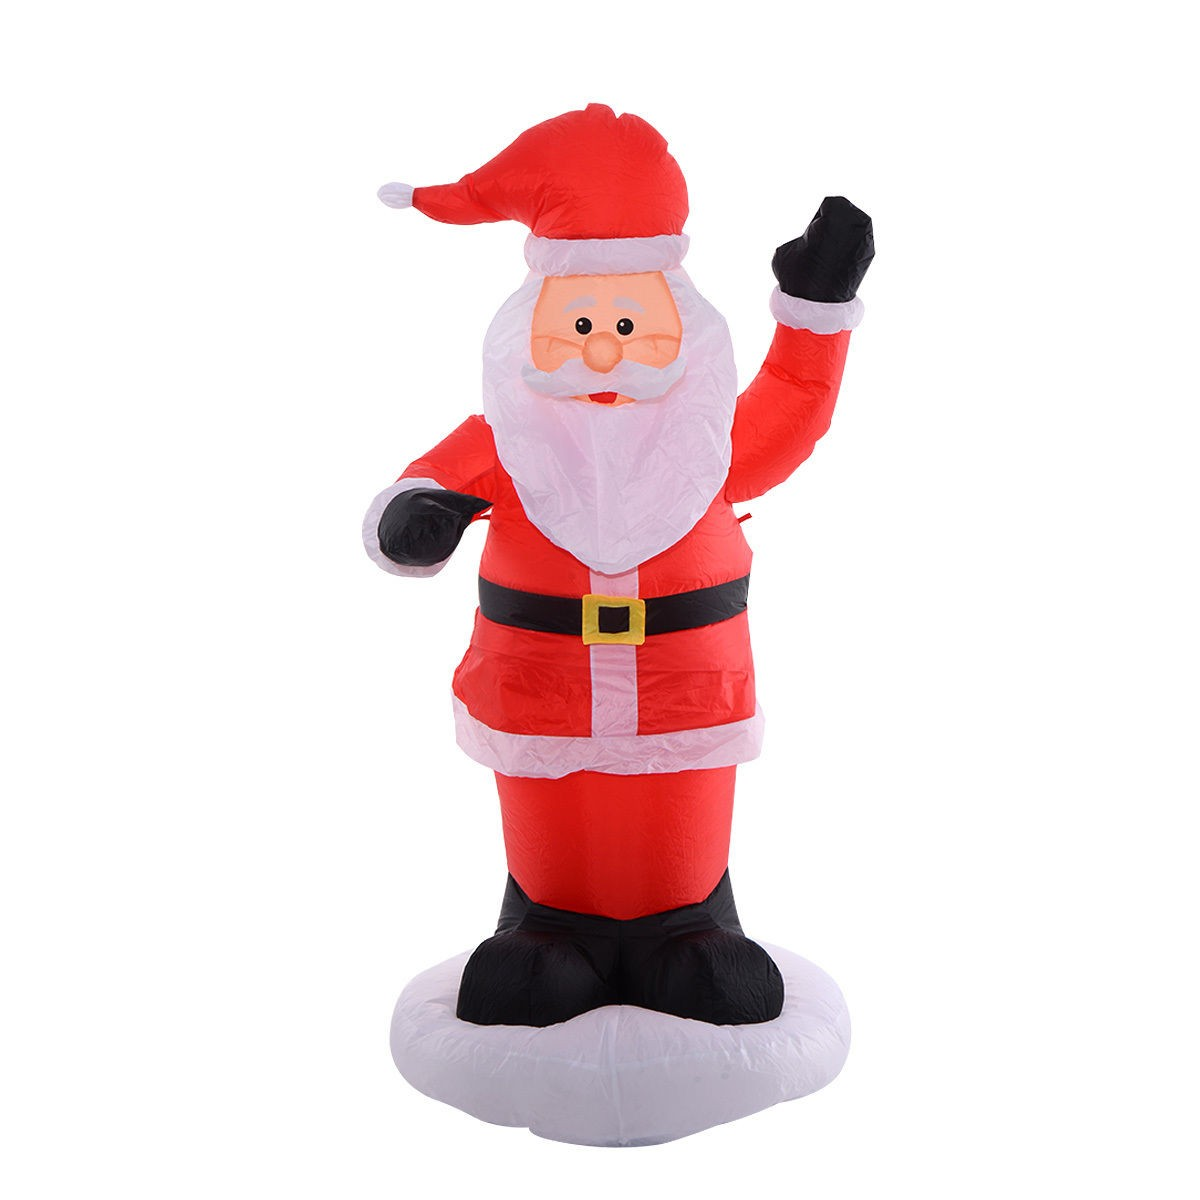 Santa Claus Lawn Decorations: 6Ft Airblown Inflatable Christmas Xmas Santa Claus Outdoor